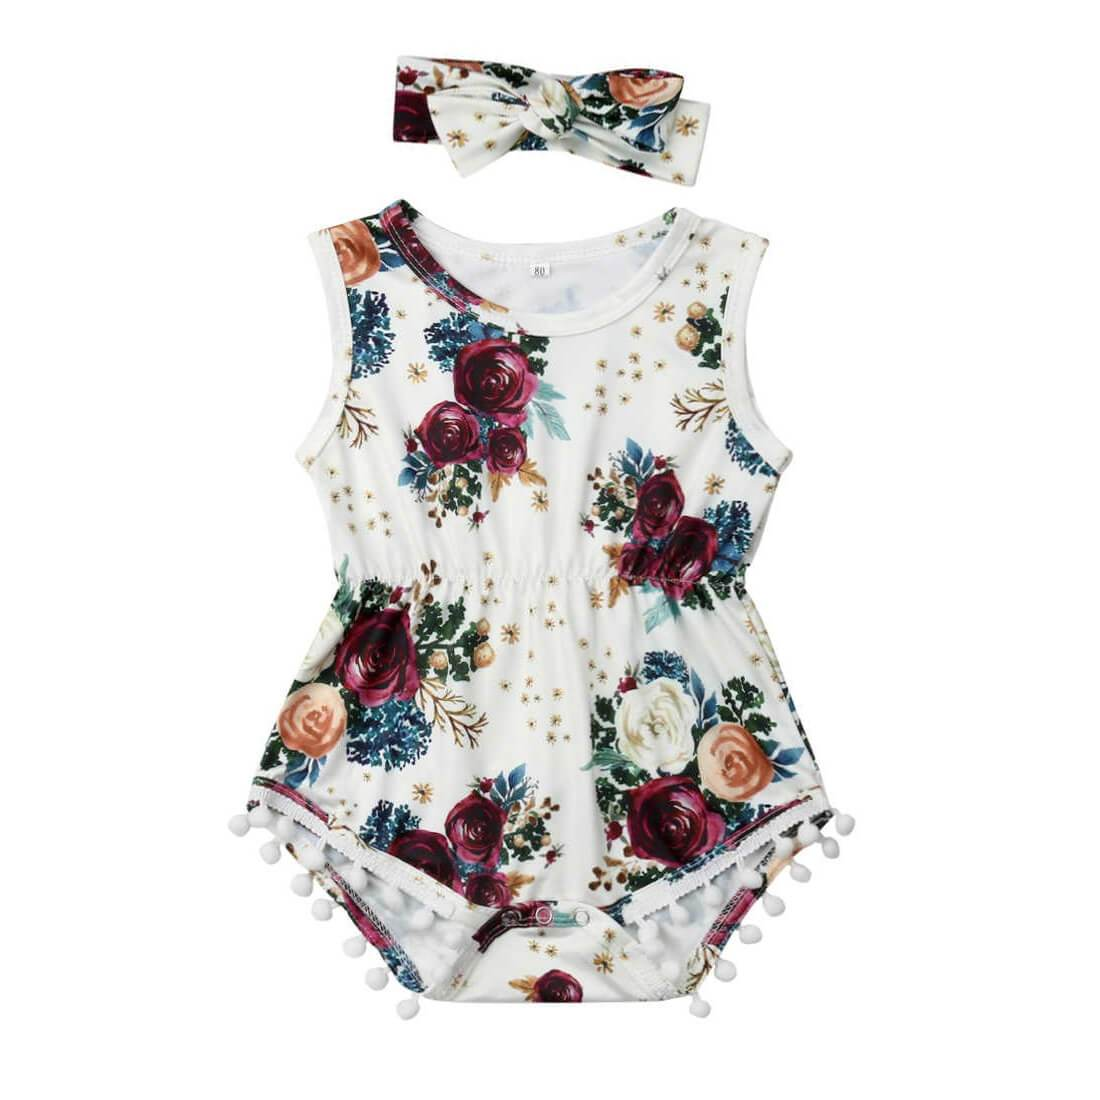 Sleeveless Tassel Floral Romper - The Trendy Toddlers